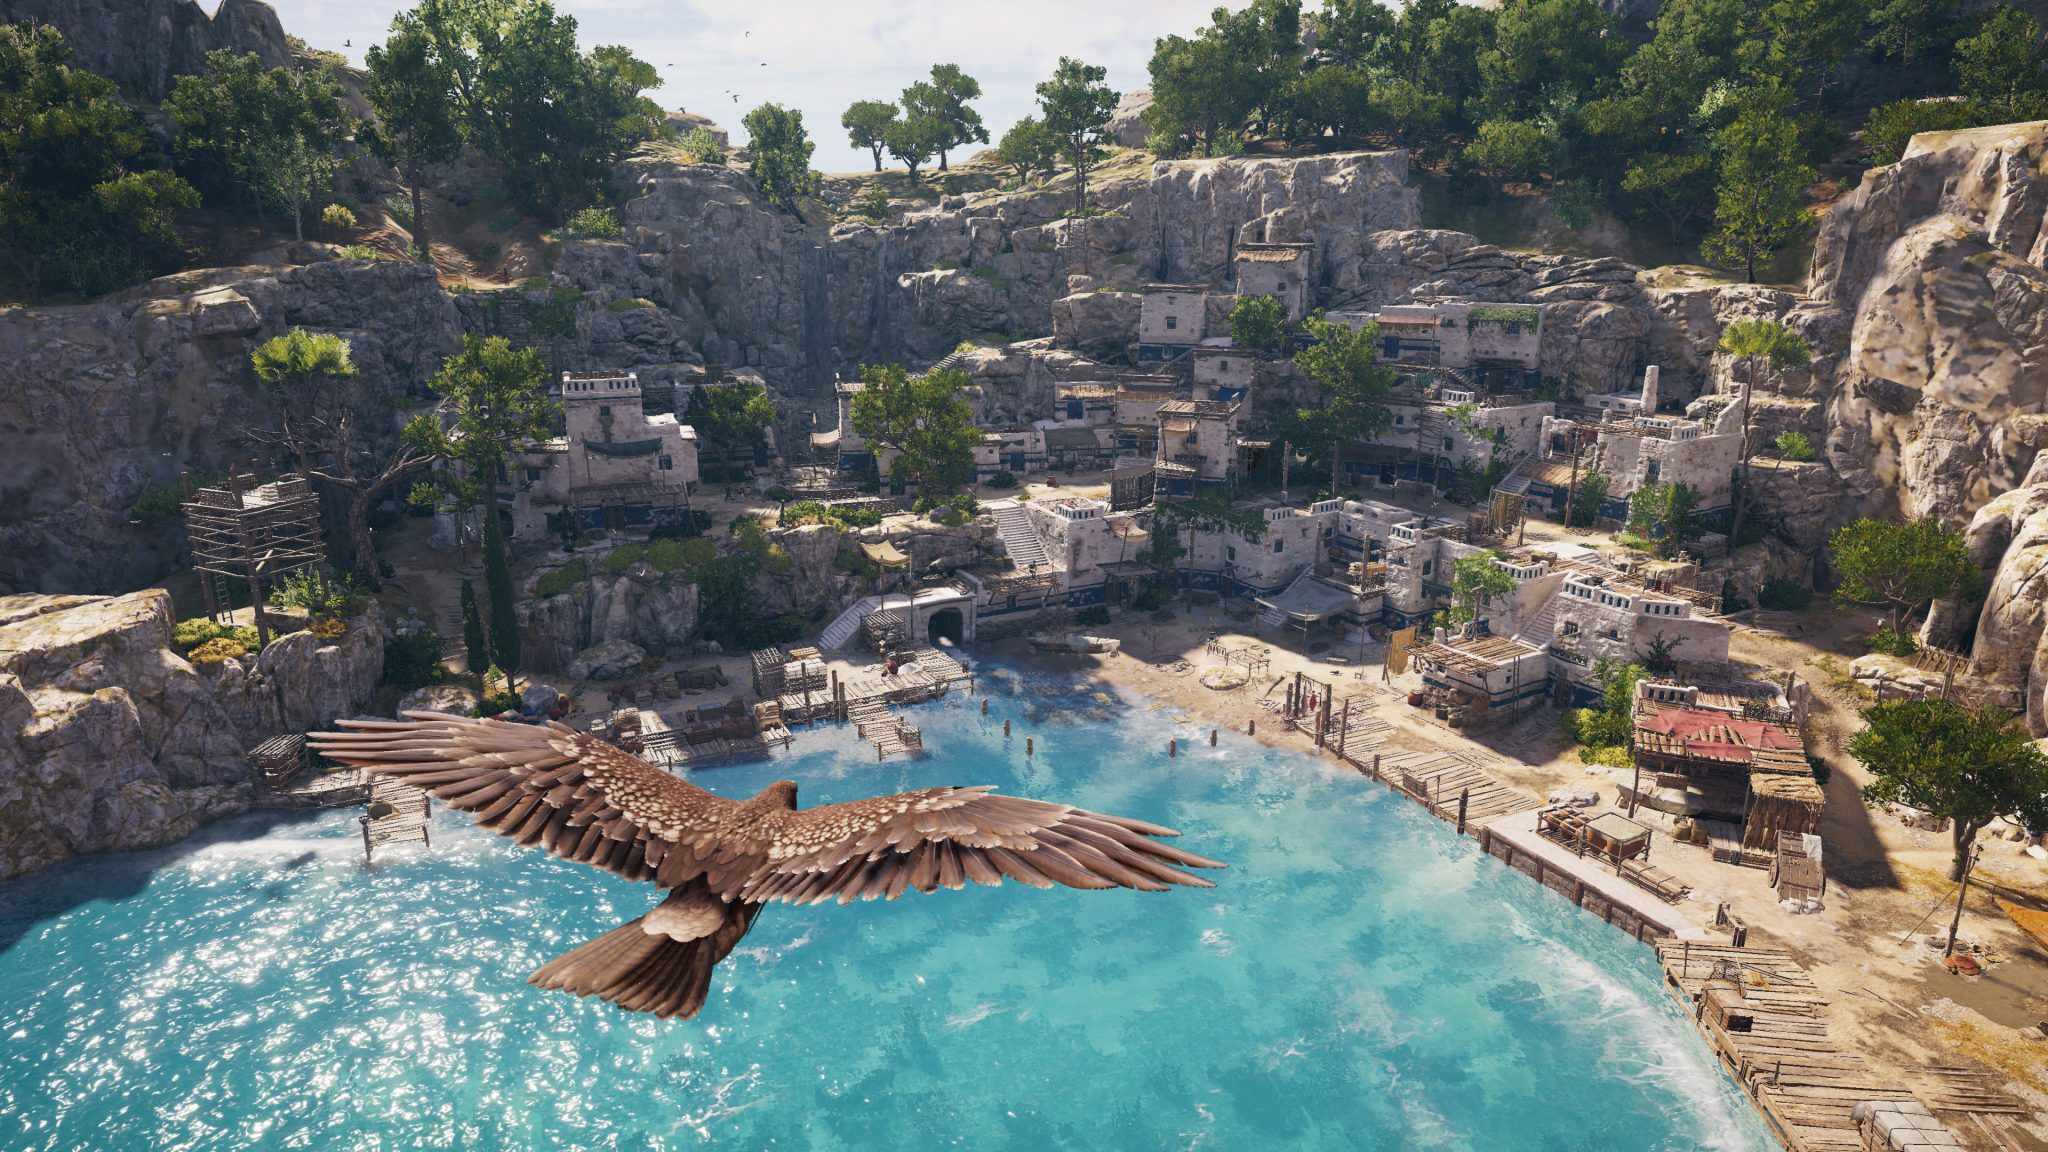 Assassin's Creed Odyssey AC Odyssey Xbox One X PlayStation 4 Pro PS4 Pro PC Ubisoft Test Kritik Review Ikarus